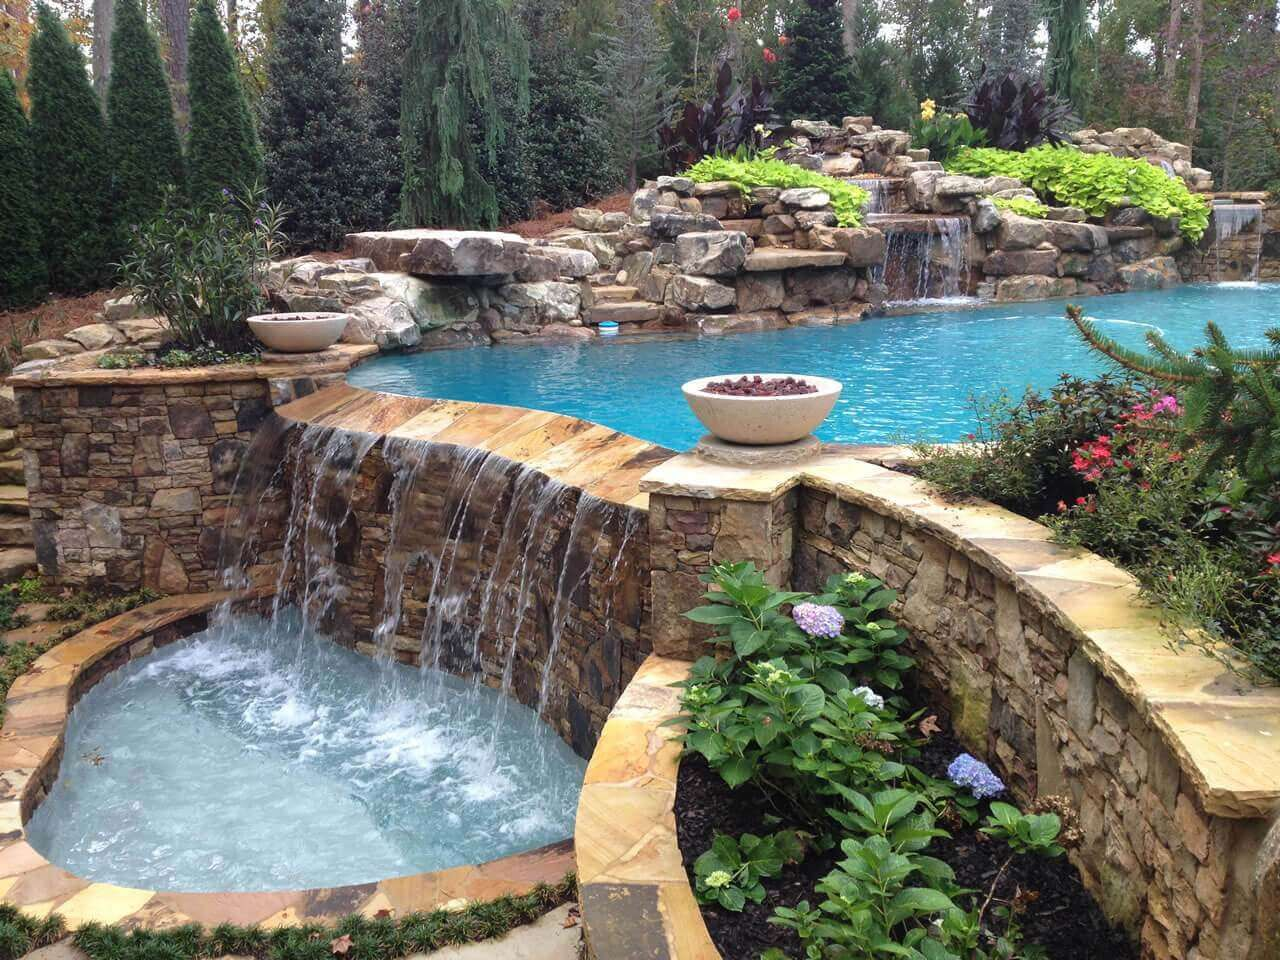 Pool Designers Near Me Garden Pool Design Luxury Garden Pool Designs